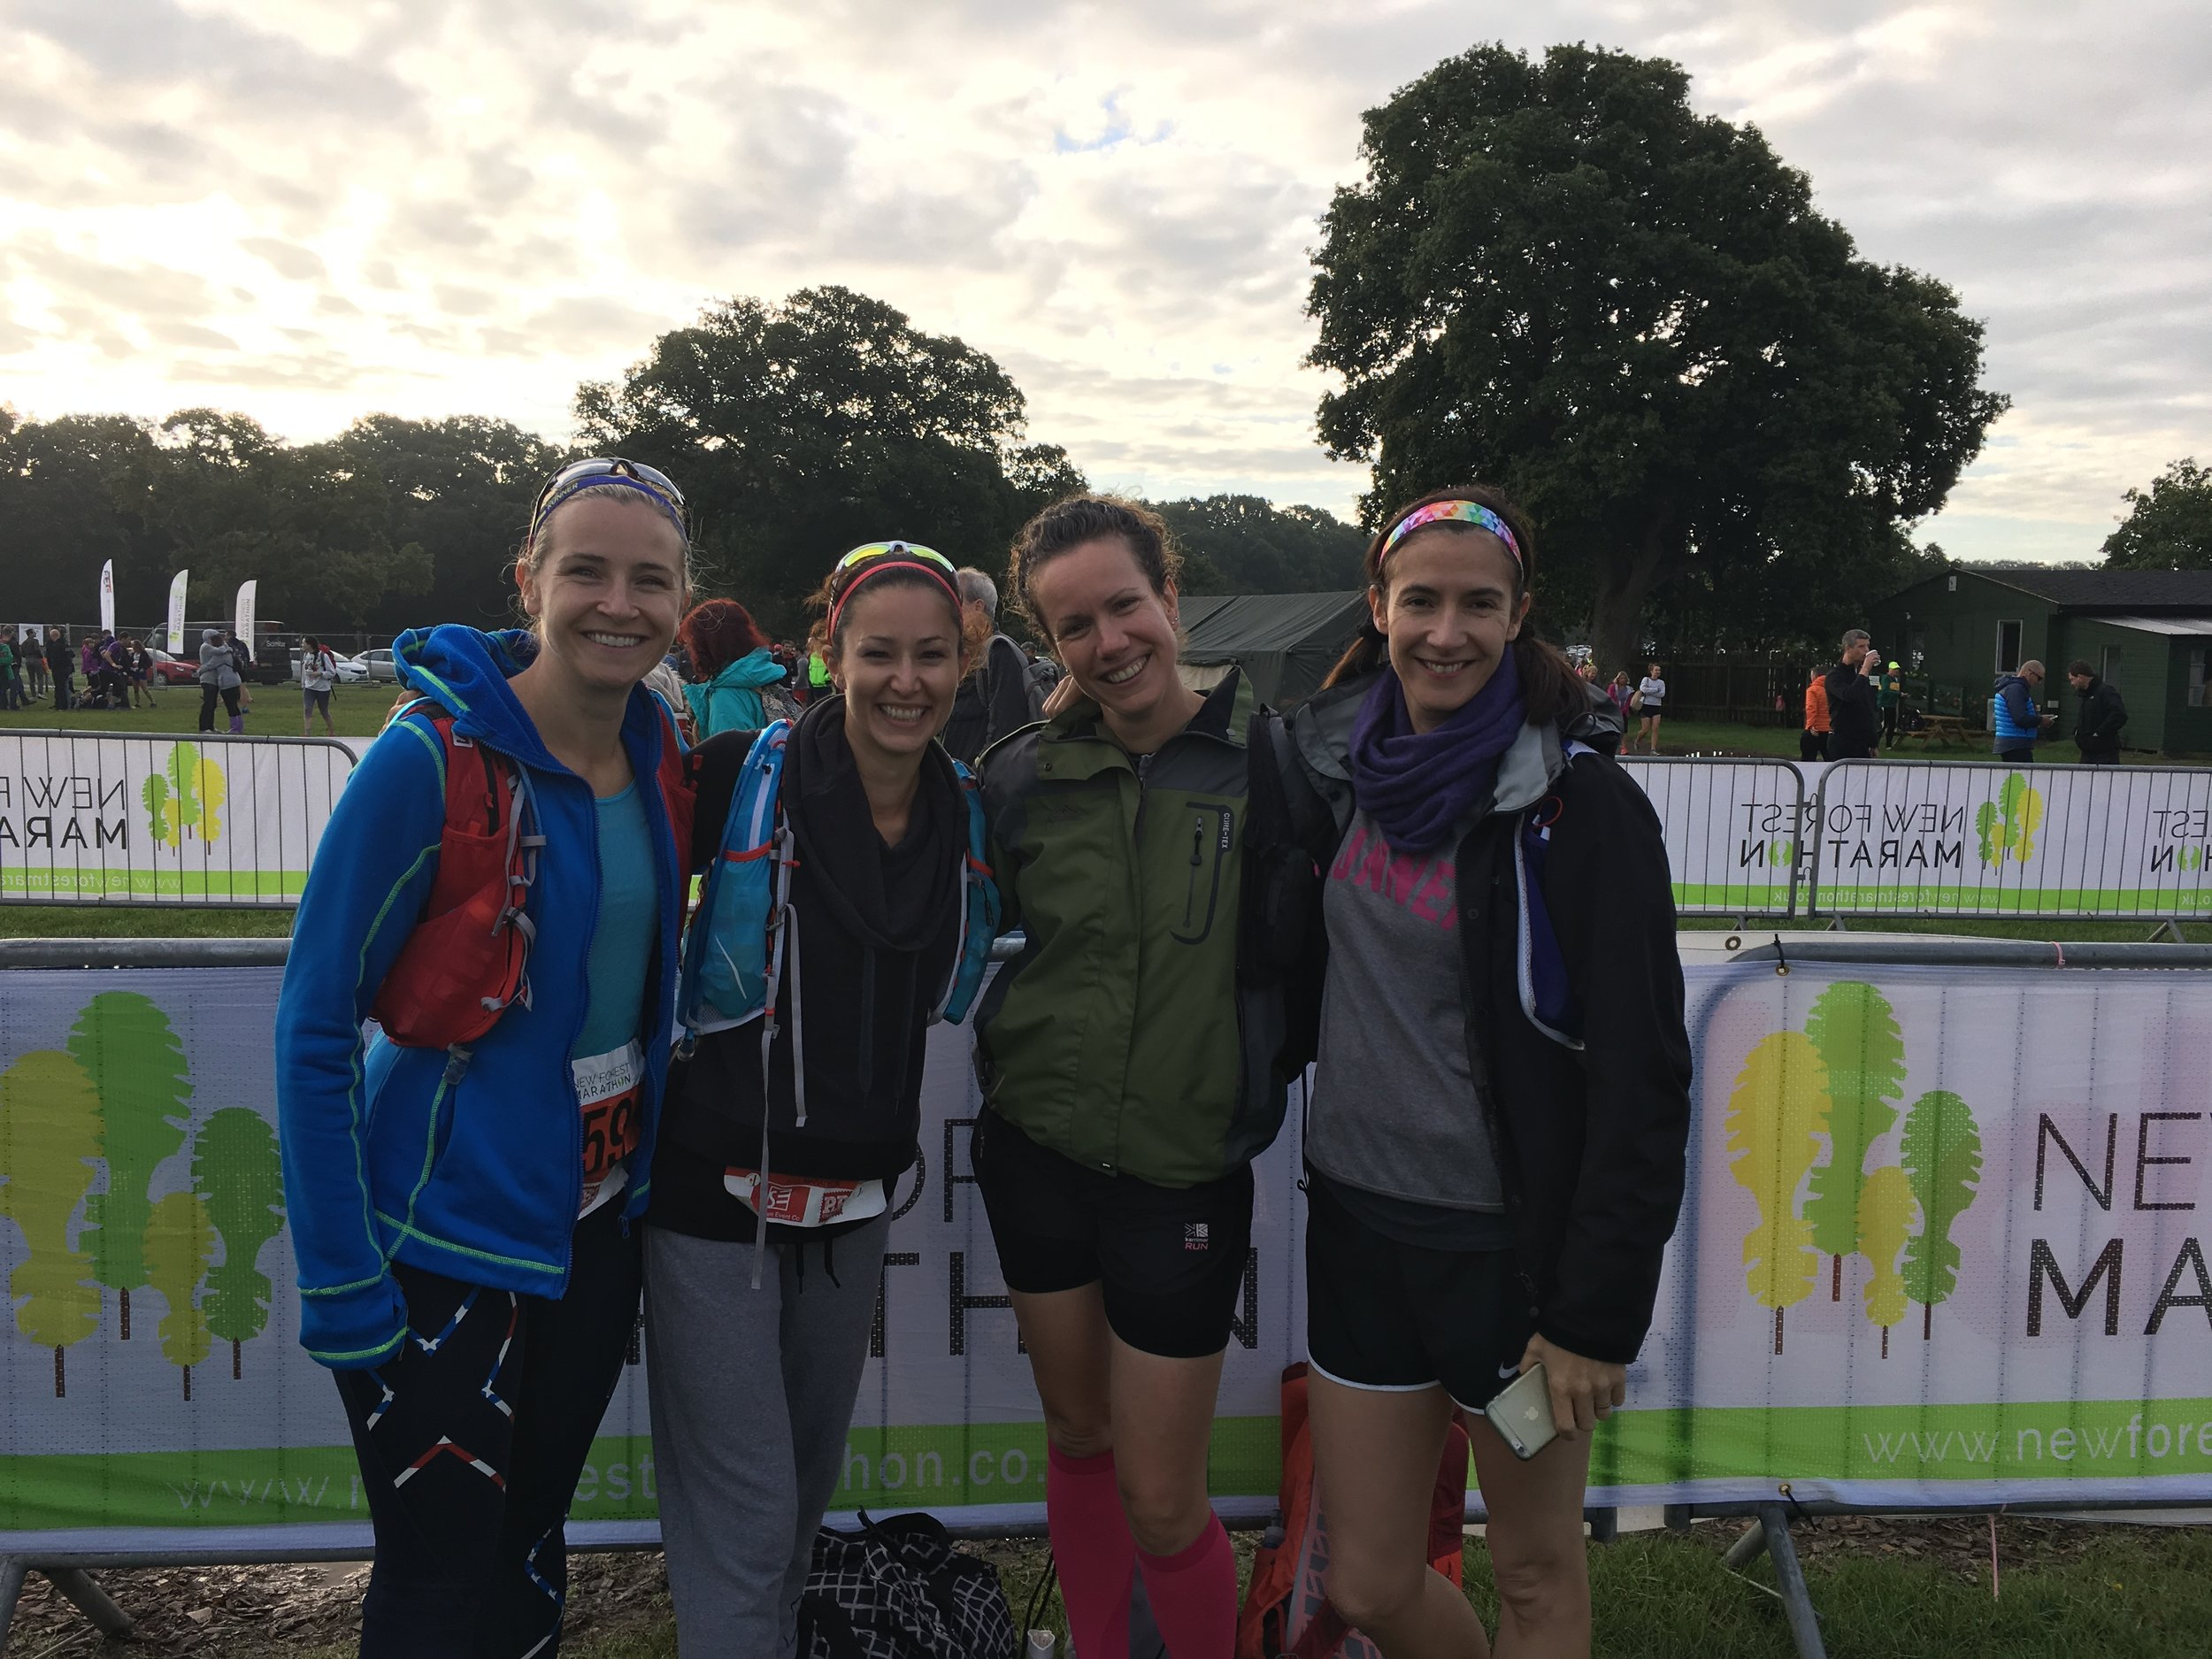 left to right (me, Laura, Hill's and Martha) at the start of New Forest Marathon